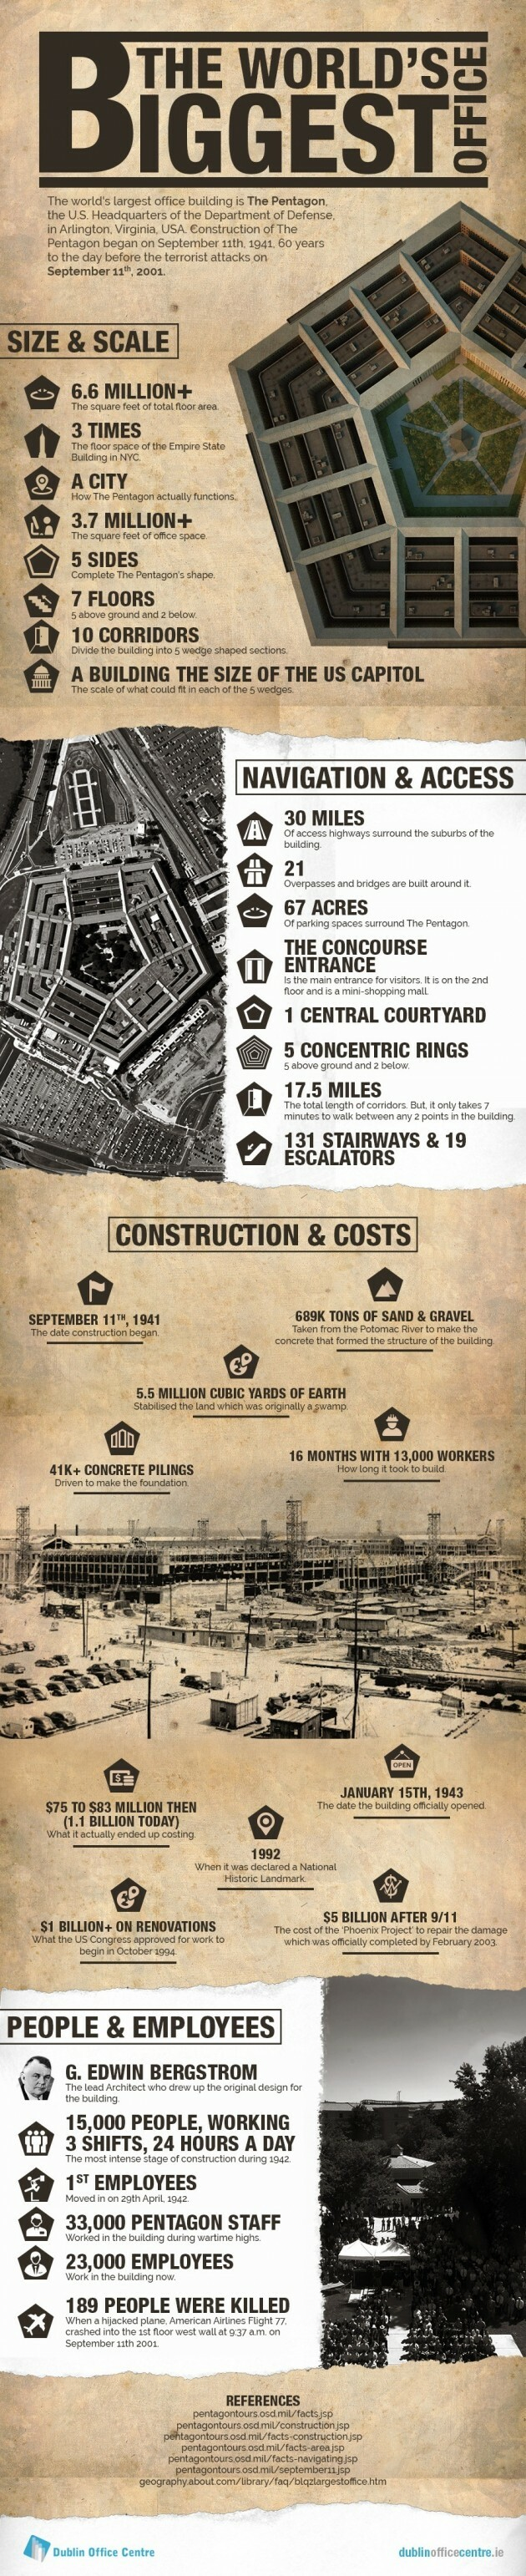 Surprising Facts about The Largest Office in the World: Pentagon - Articles about Apartments 1 by  image